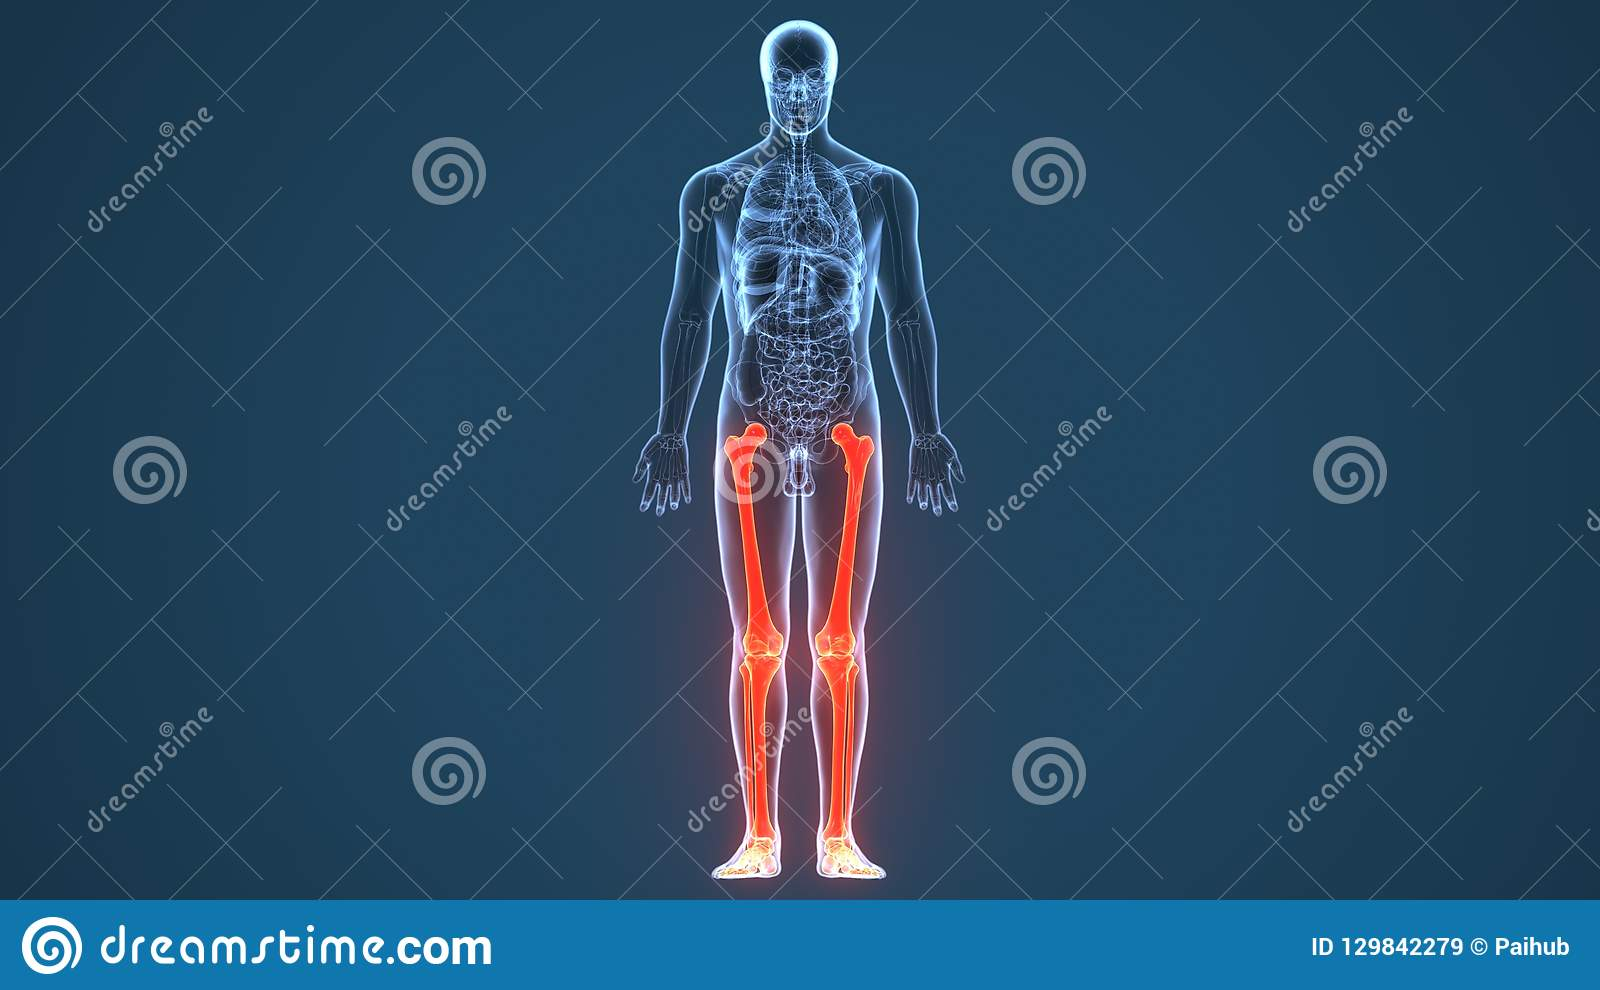 article includes list related items share same name if internal link incorrectly led you here you may wish 129842279 3d illustration of human skeleton leg bones anatomy stock